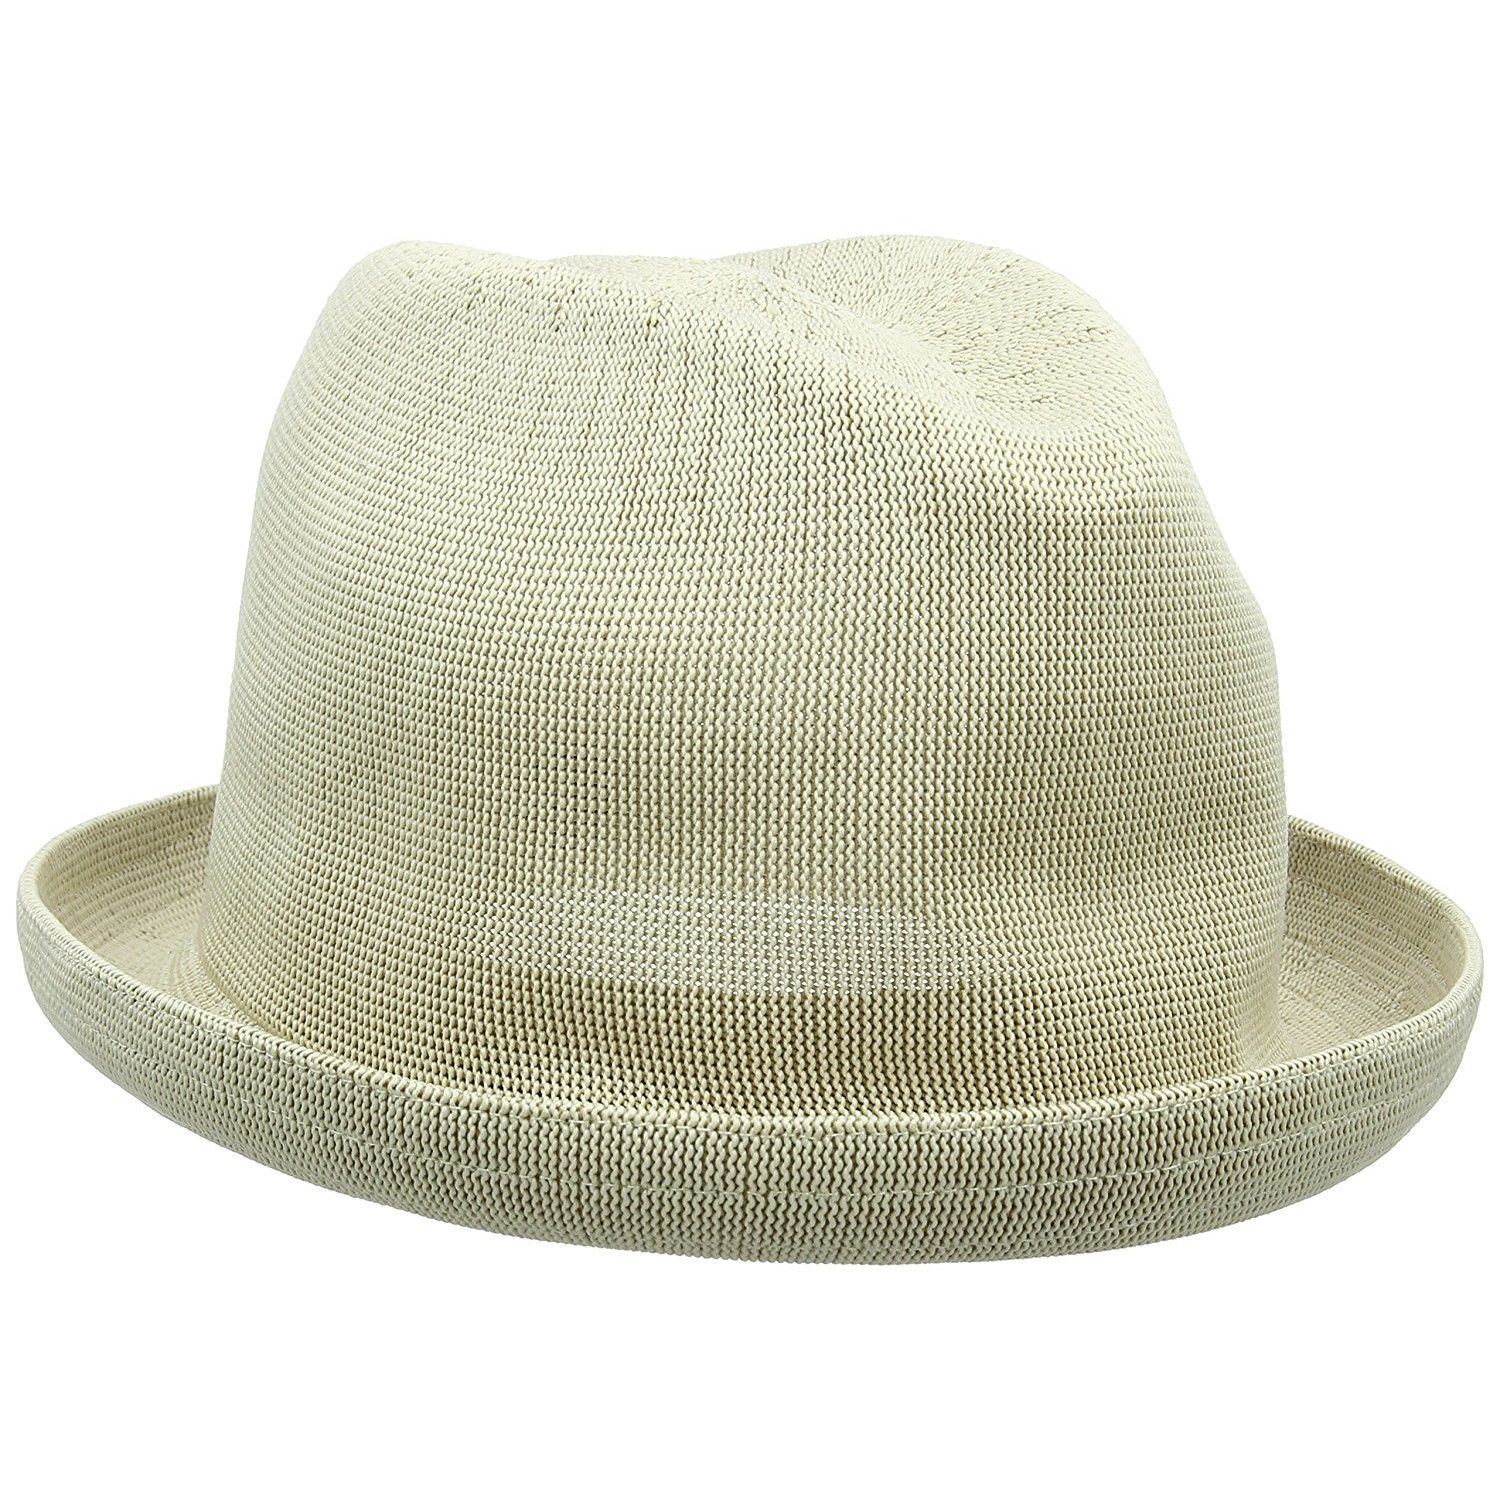 5822dff046f25 Tropic Player Fedora Hats For Men